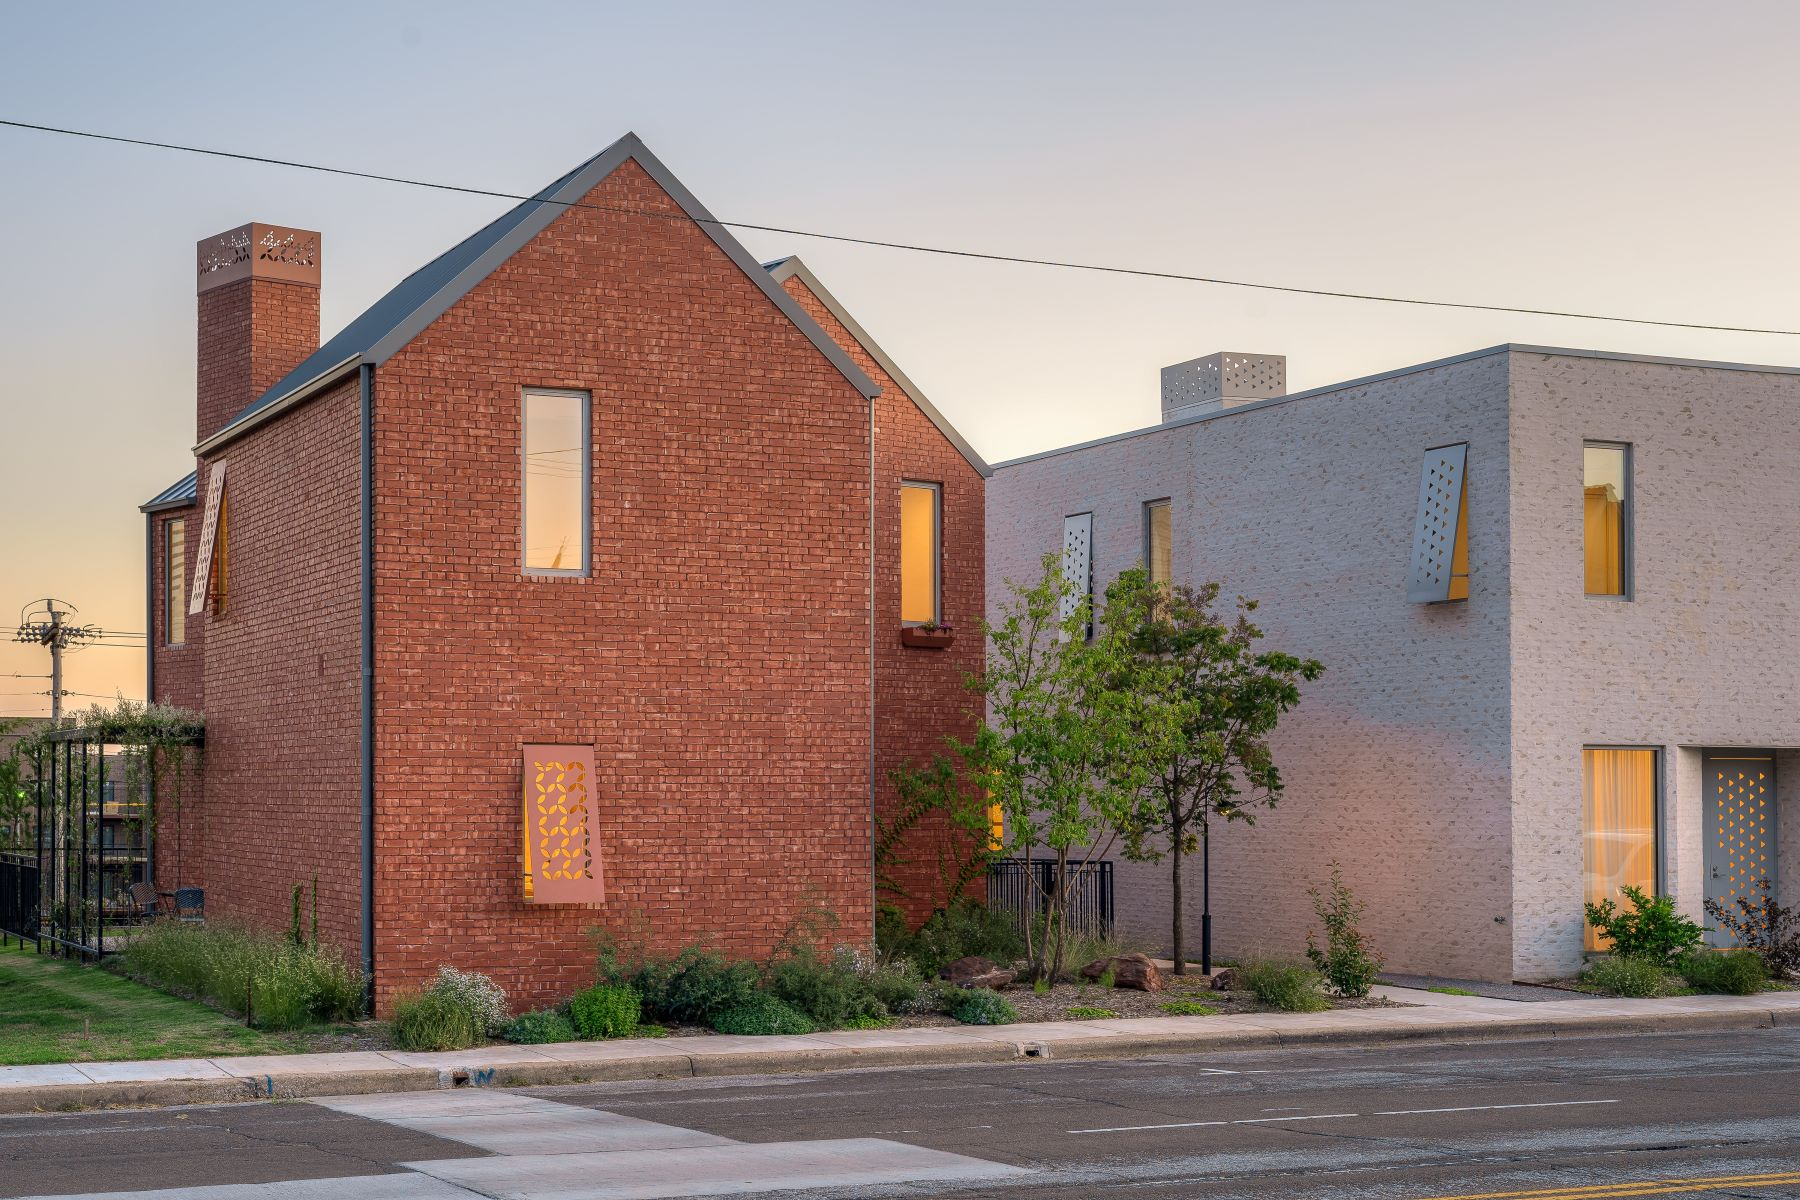 Single Family Homes for Active at A Modernist's Dream 612 NW 6th Street Oklahoma City, Oklahoma 73102 United States